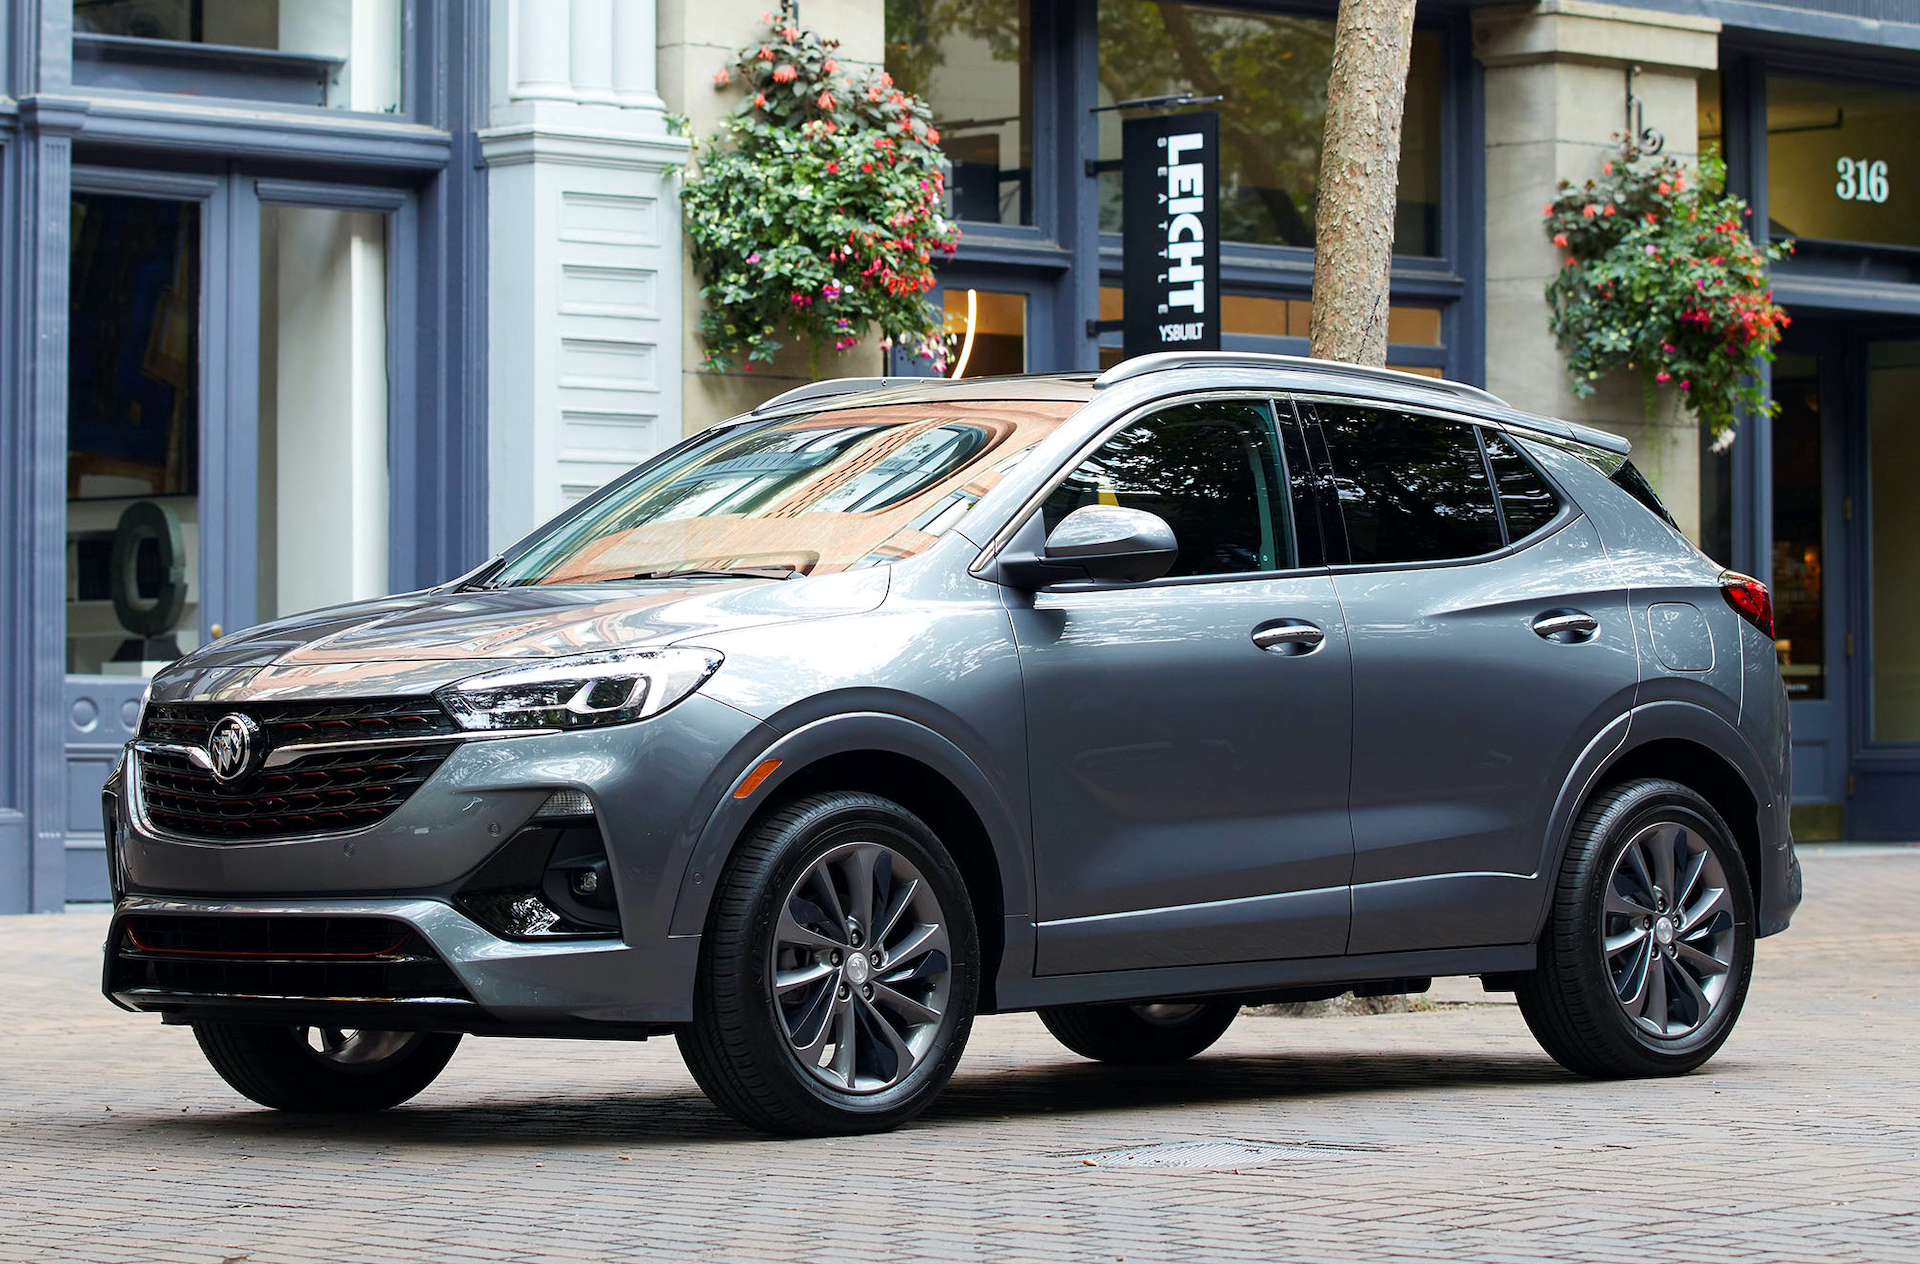 2021 Buick Encore Review, Ratings, Specs, Prices, And Photos Where Is The 2021 Buick Encore Gx Built